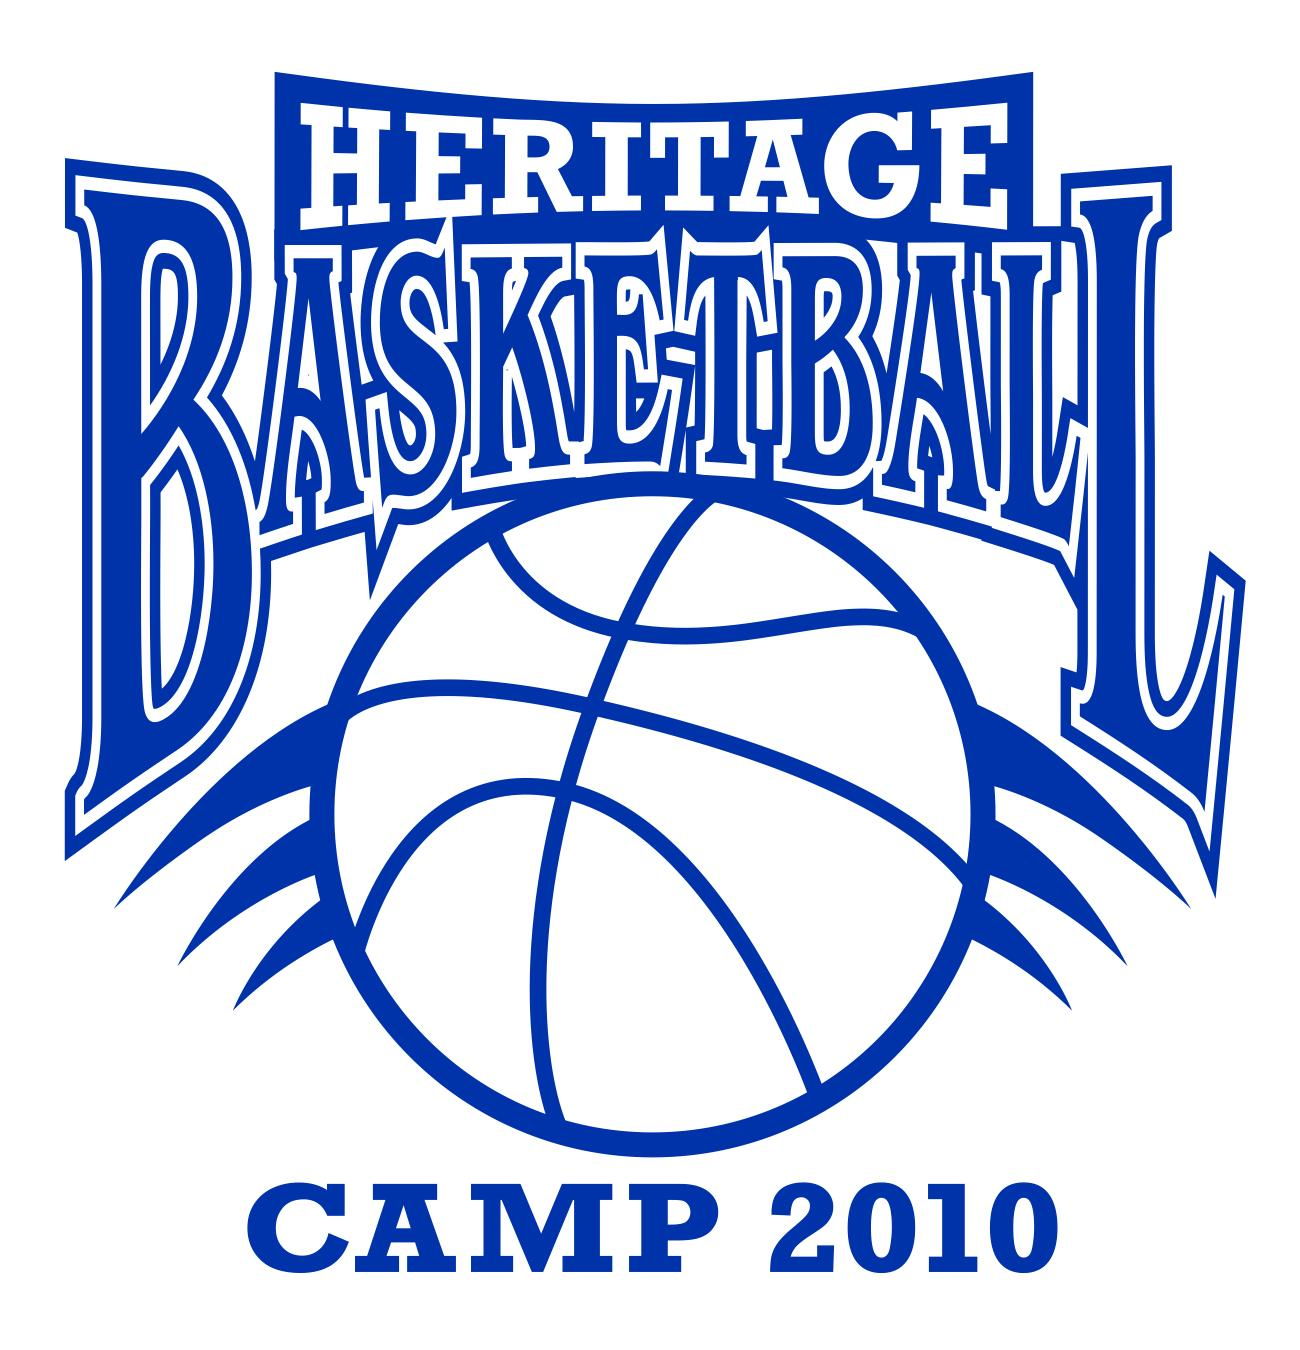 Basketball Camp Clipart.